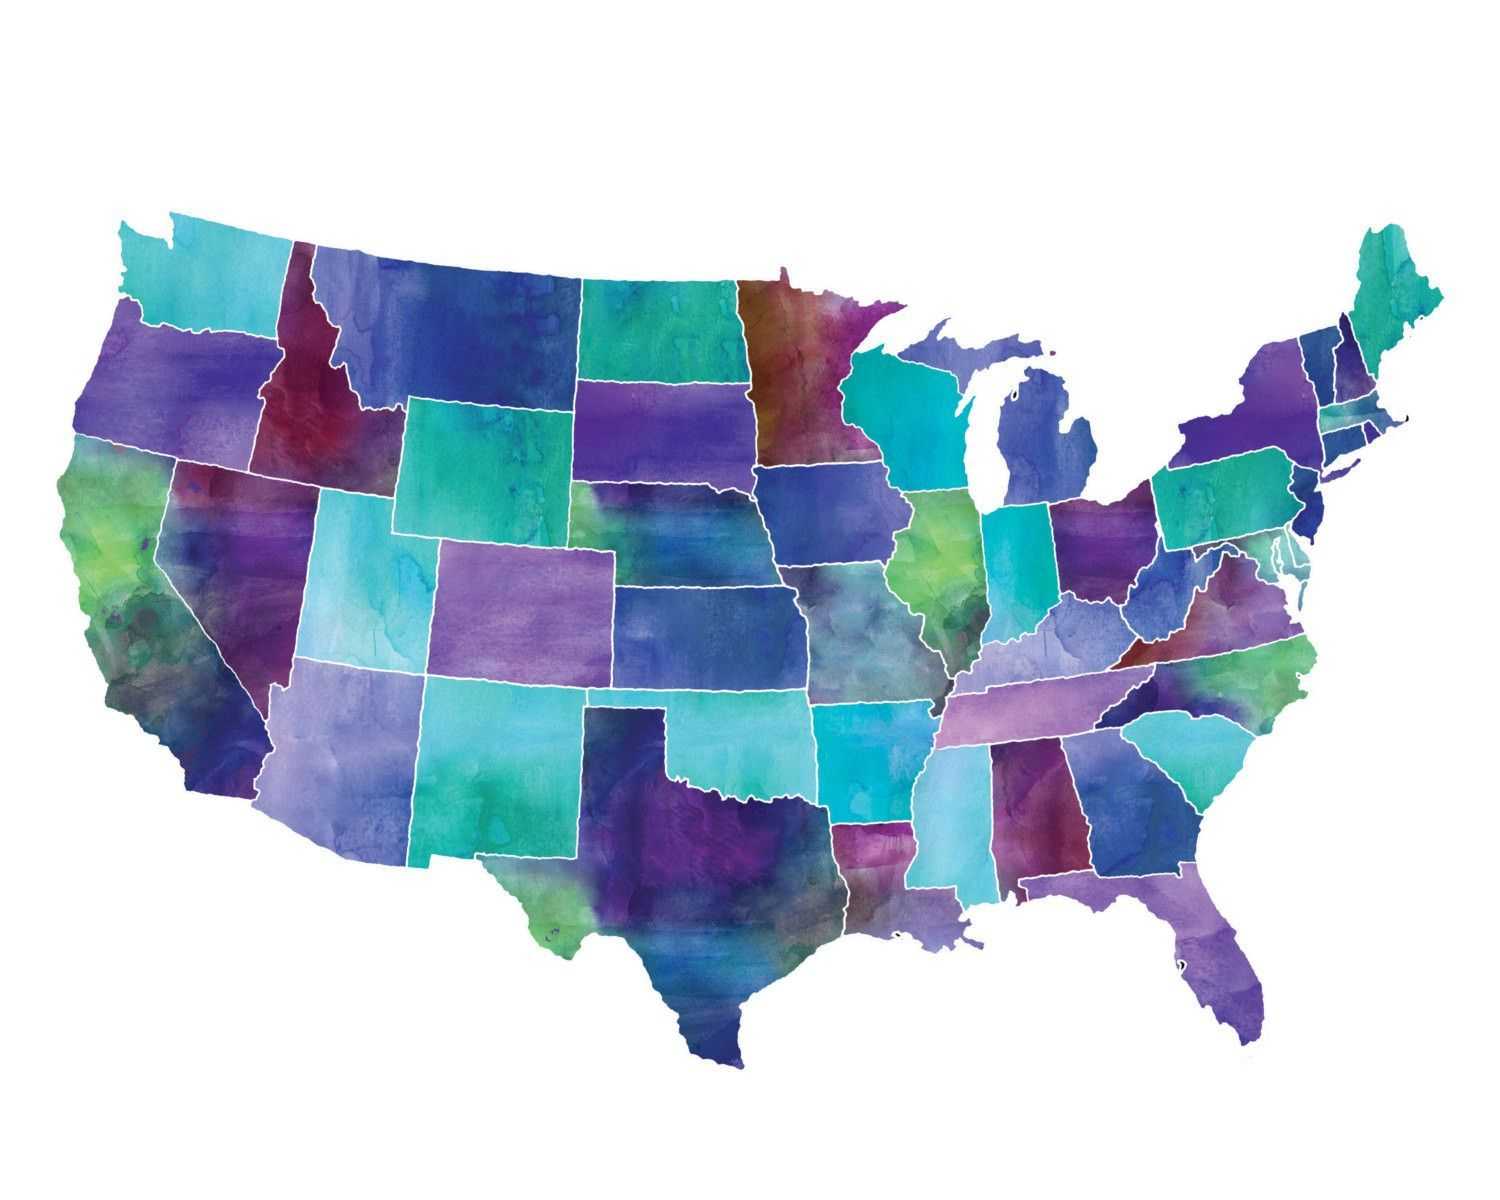 This jewel toned watercolor map of the United States is